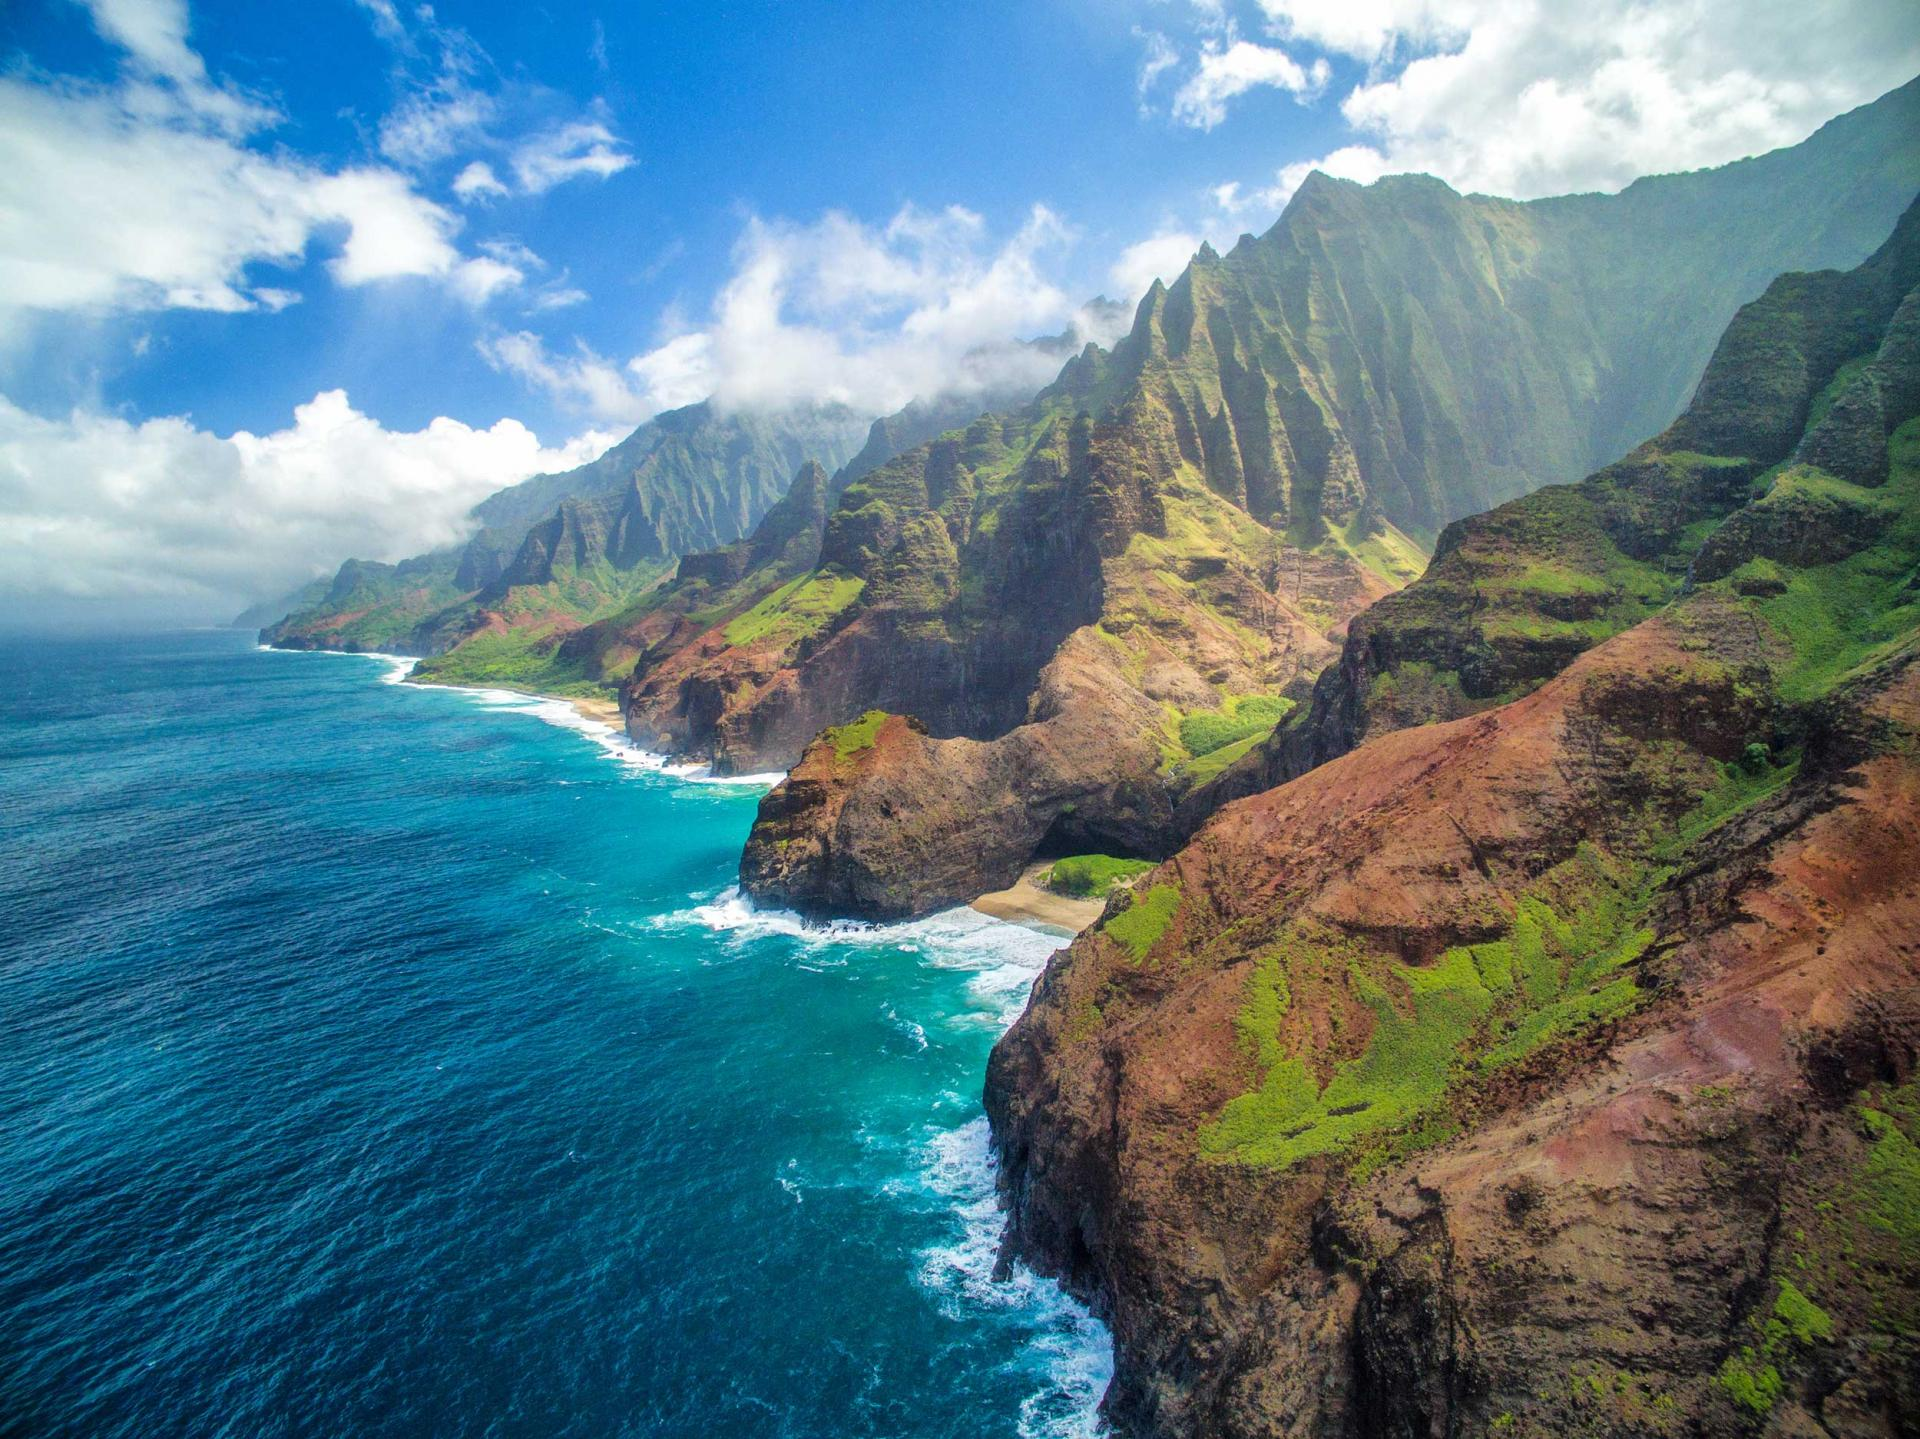 Aerial shot of Kauai coast